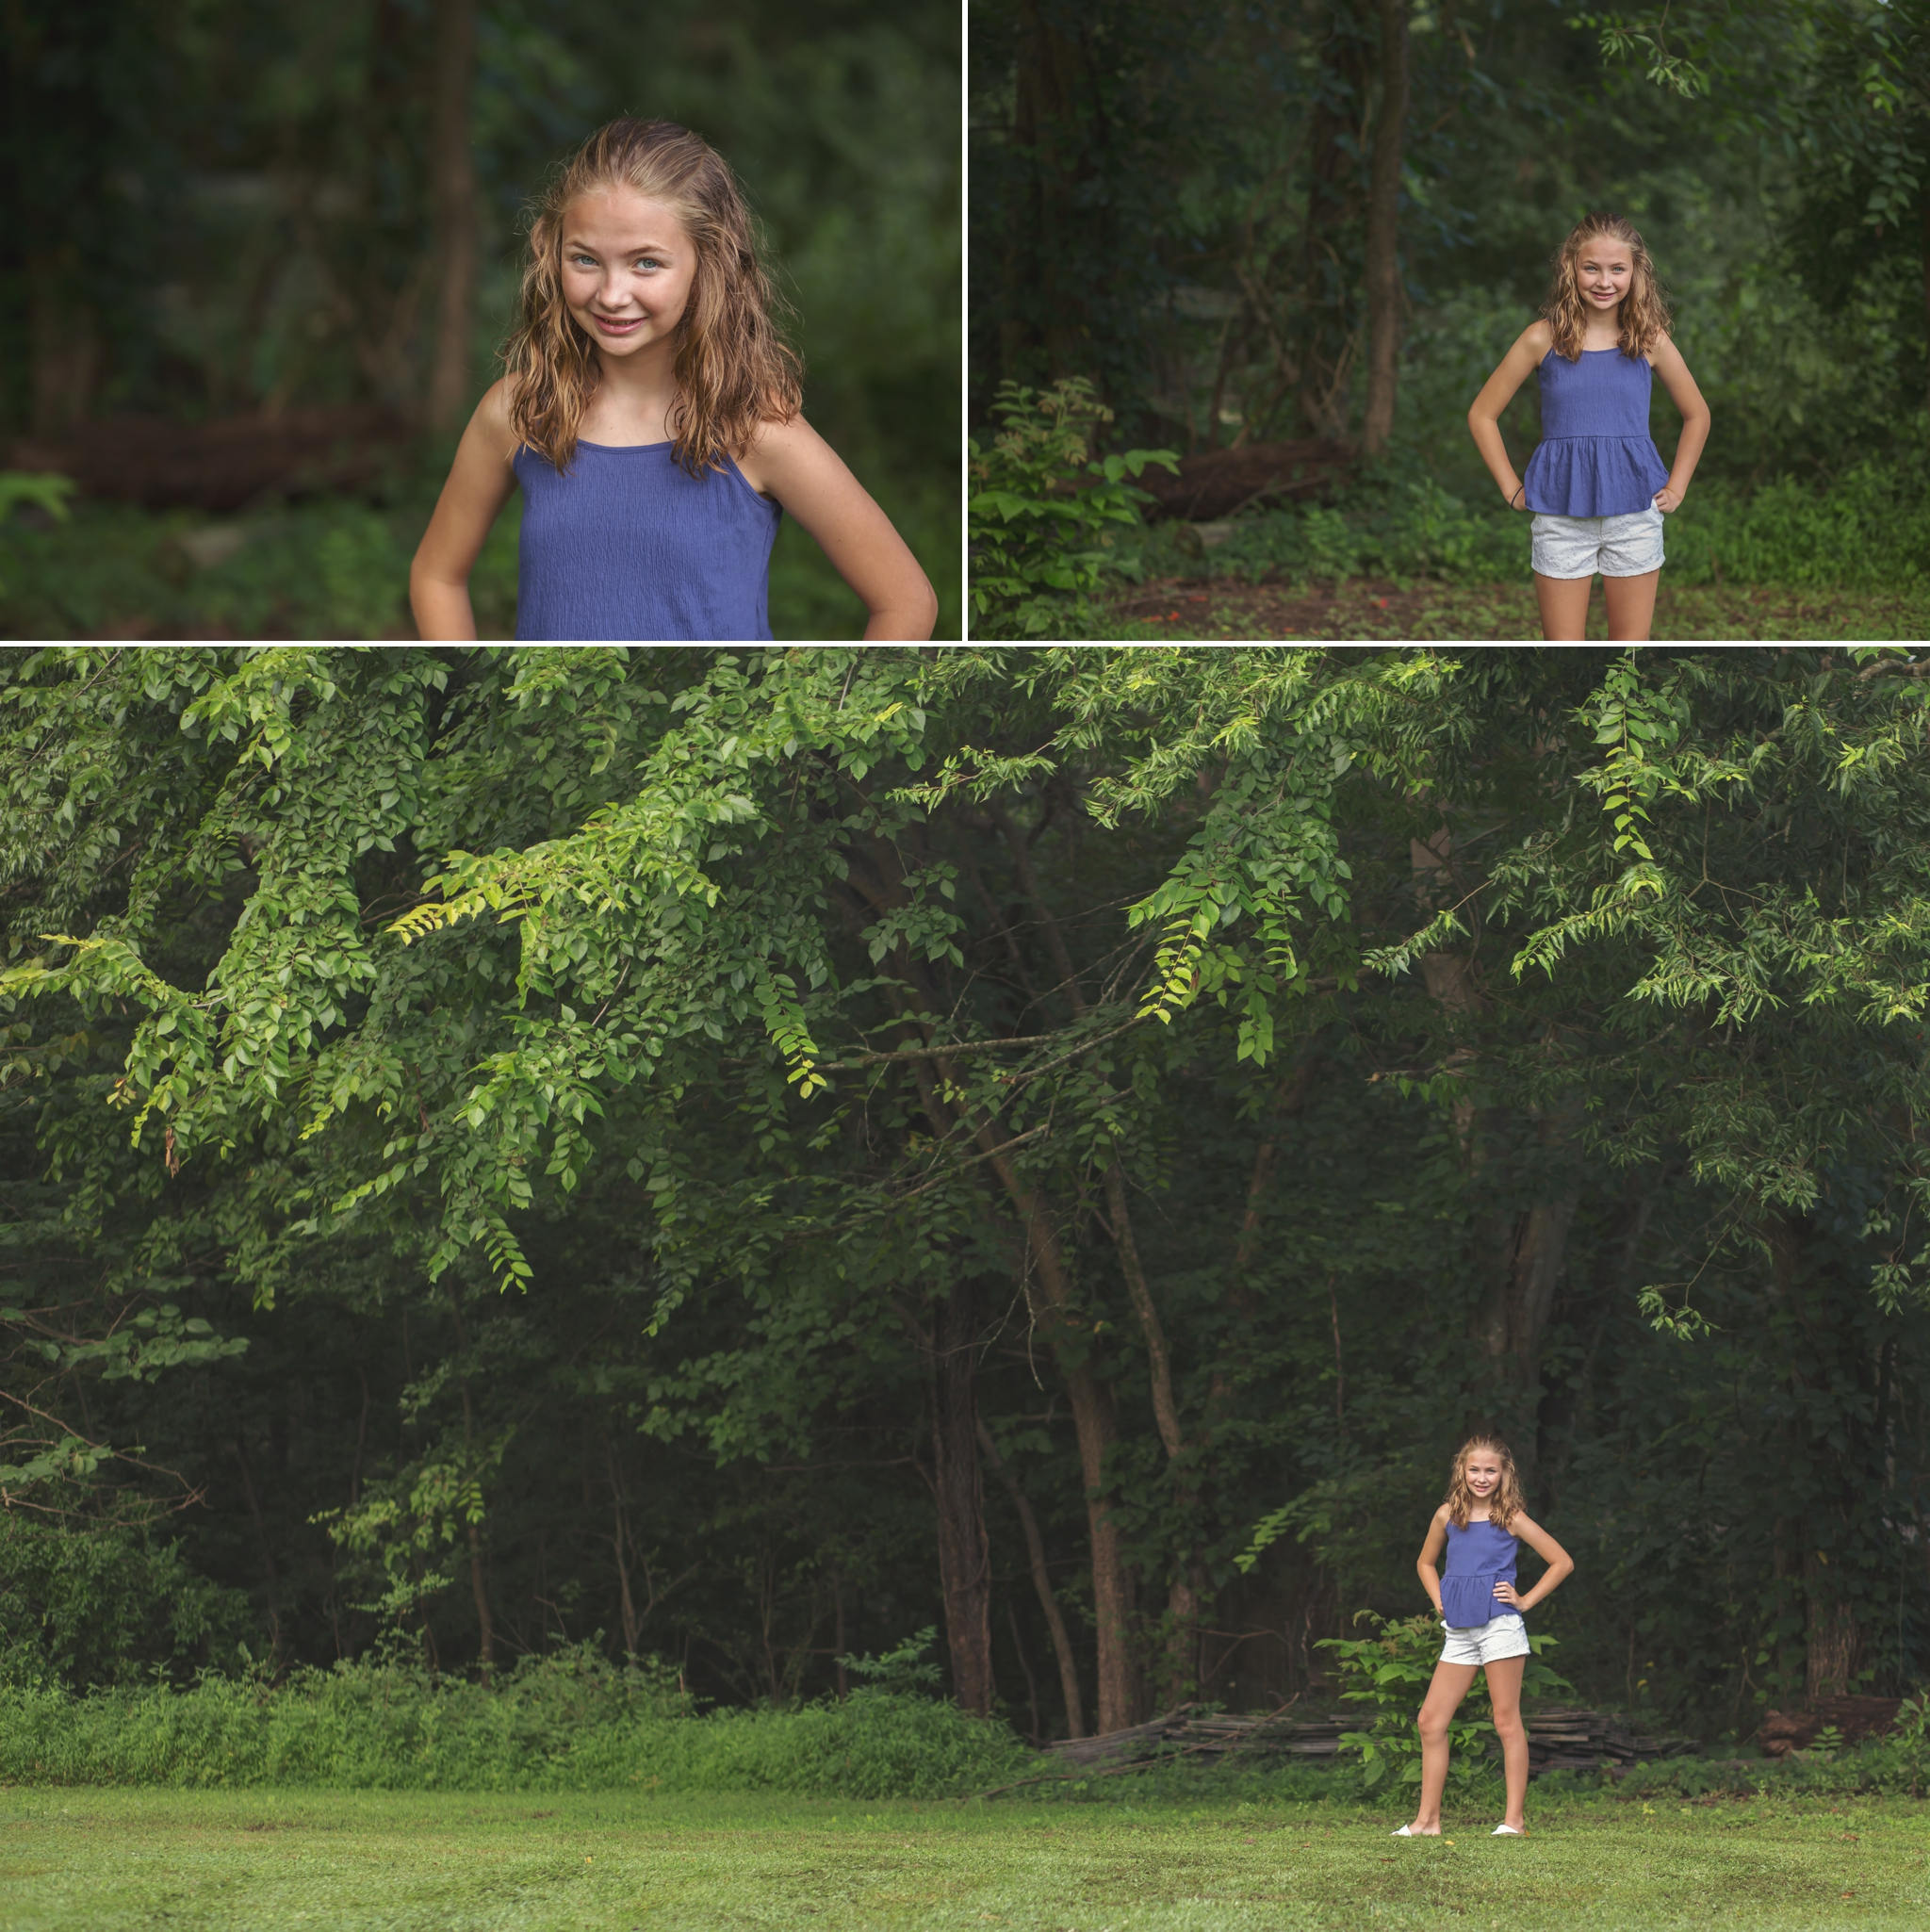 Child stands near trees in Sanford NC